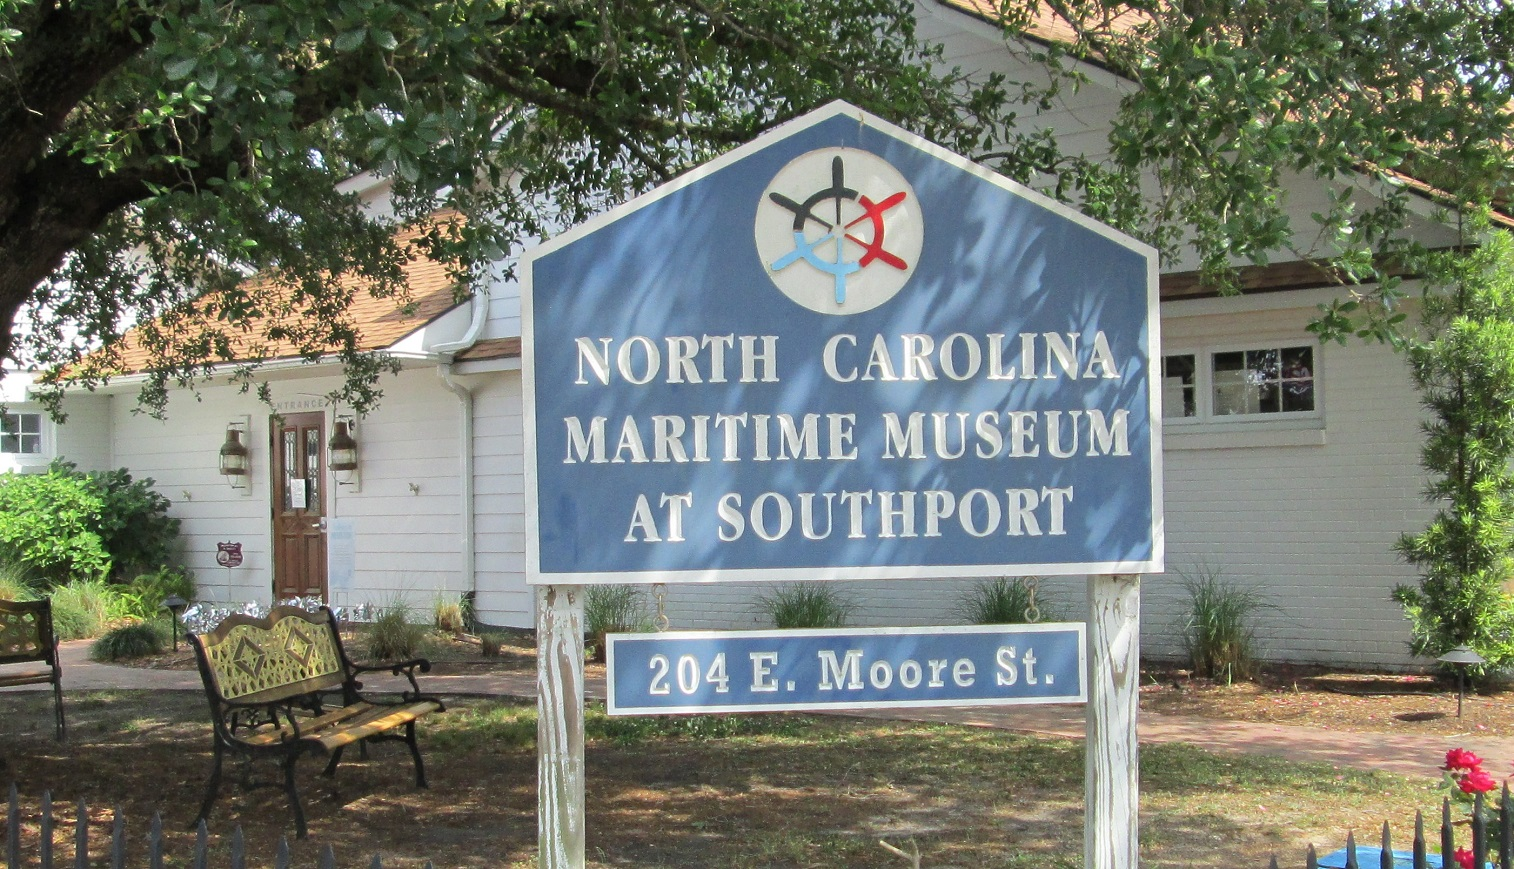 Maritime Museum Southport NC